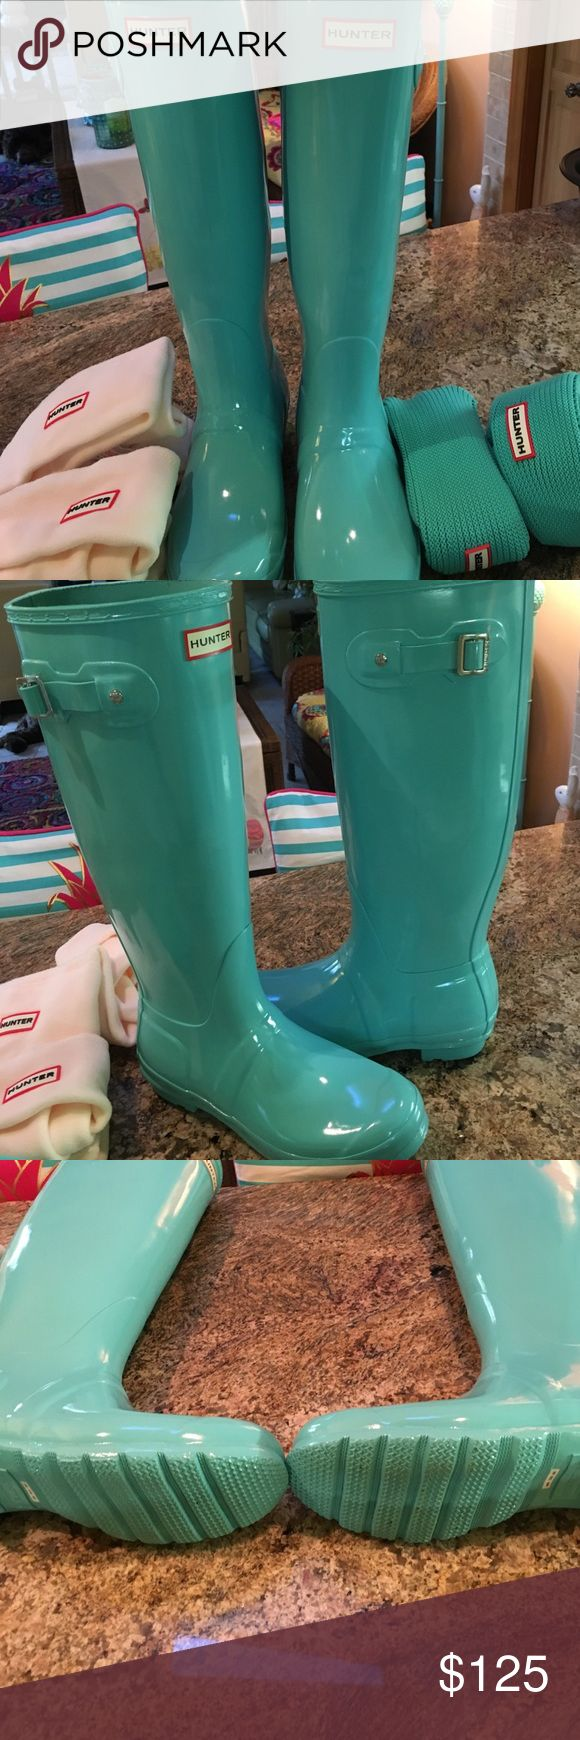 Hunter Turquoise Boots with 2 sets of liners Worn Once, Turquoise Hunter Boots with 2 pair of Hunter boot liners Hunter Boots Shoes Winter & Rain Boots